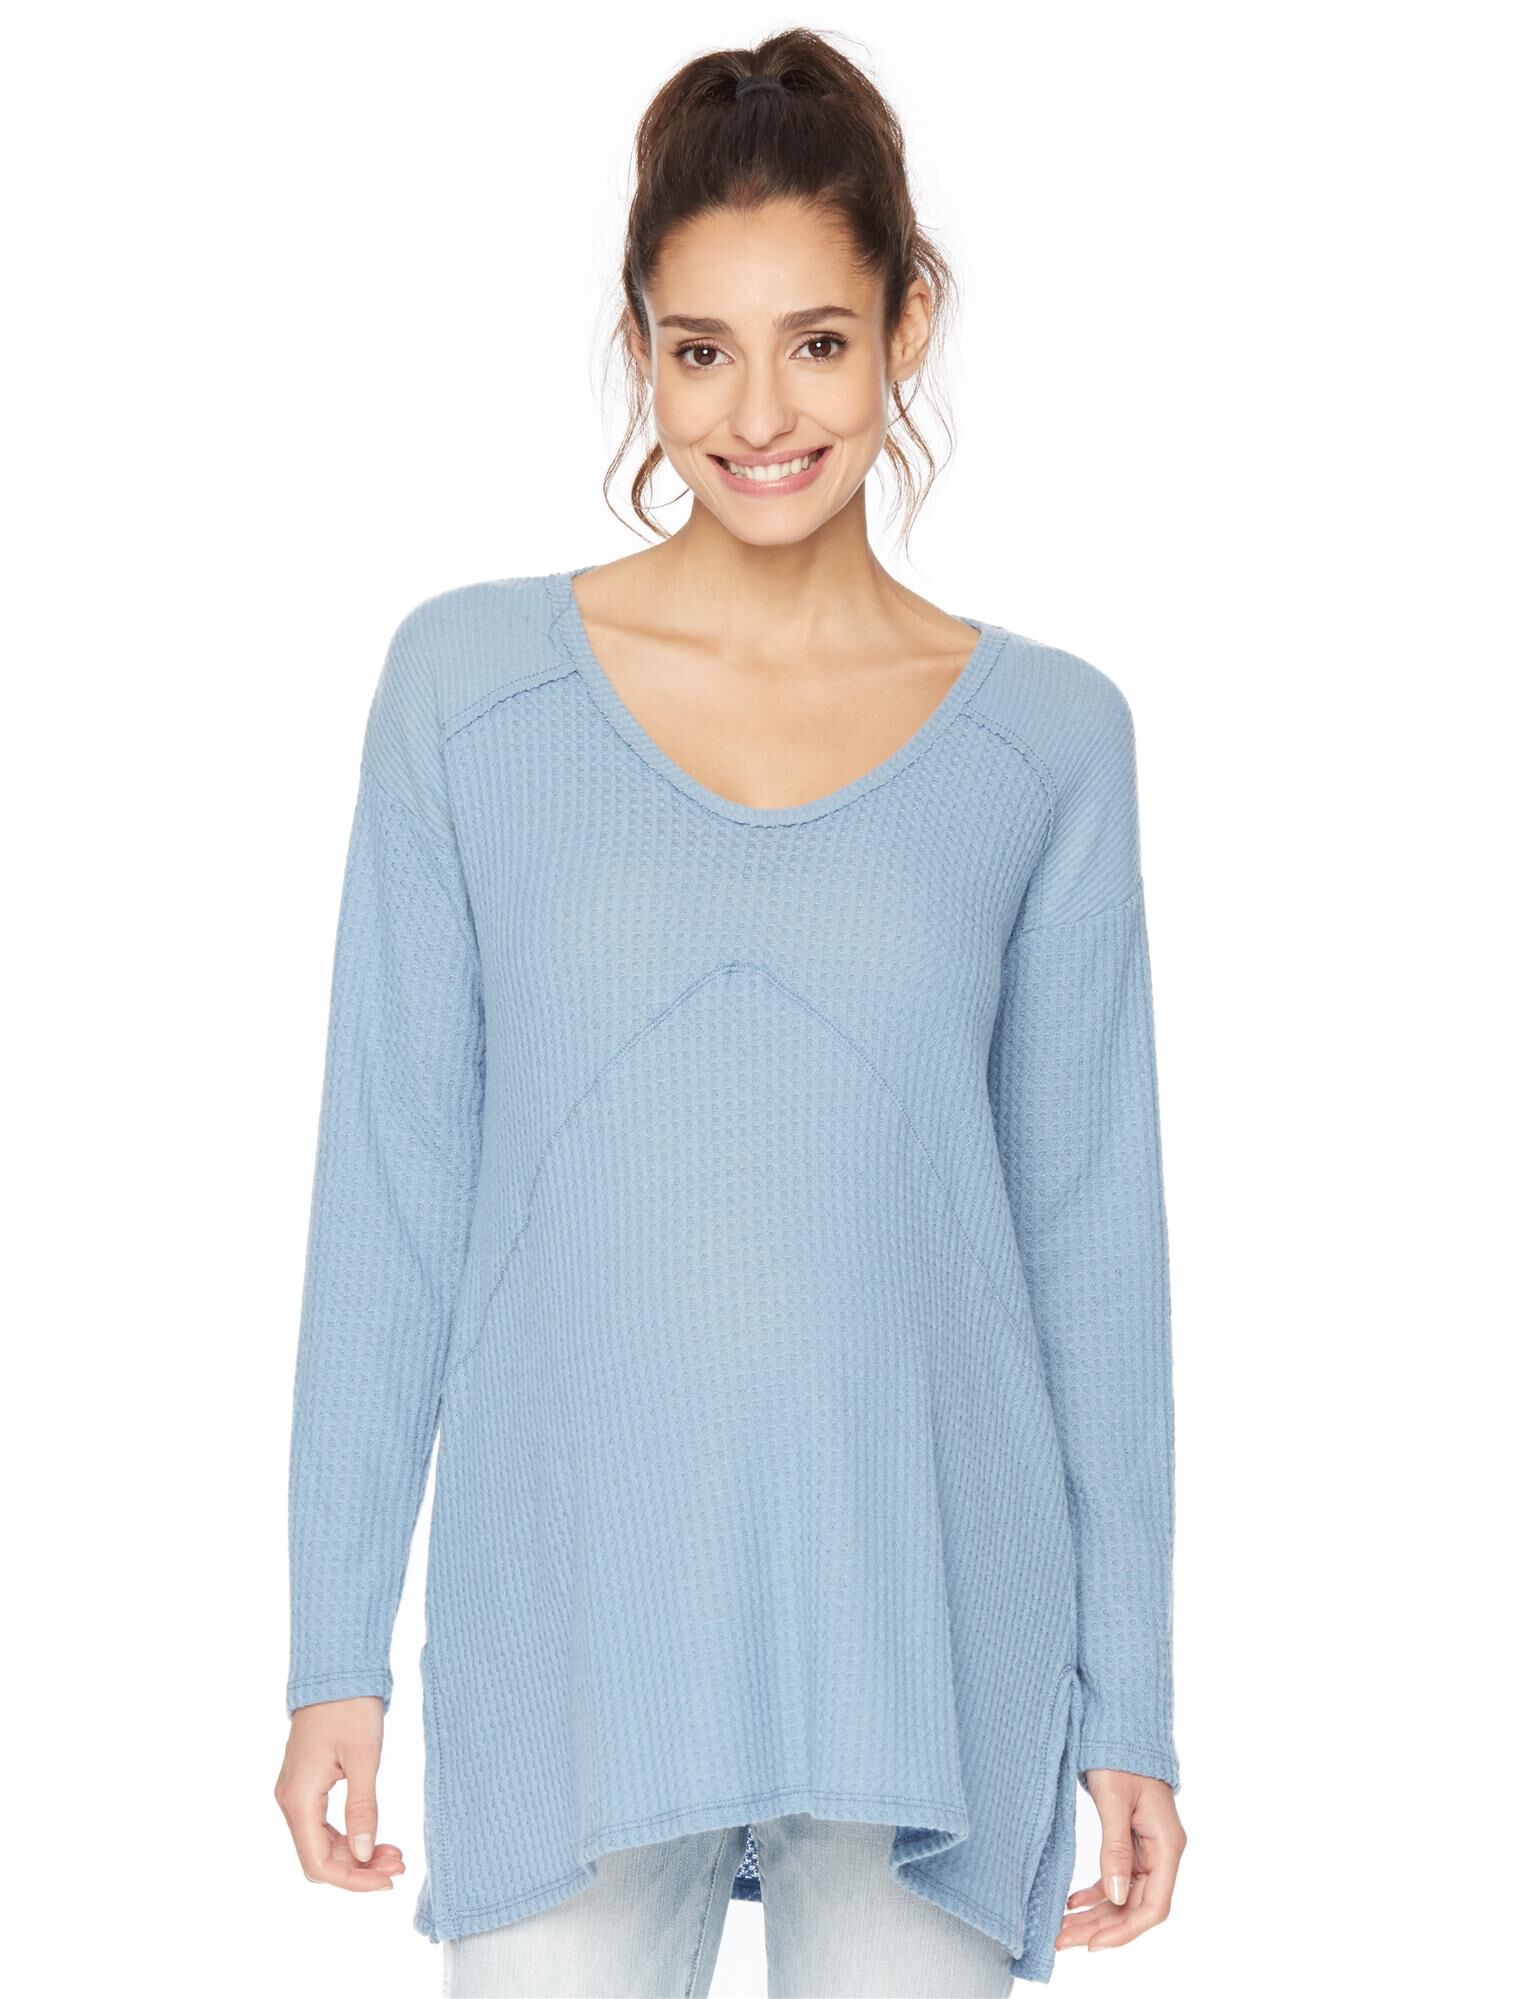 Relaxed Fit Maternity Tunic